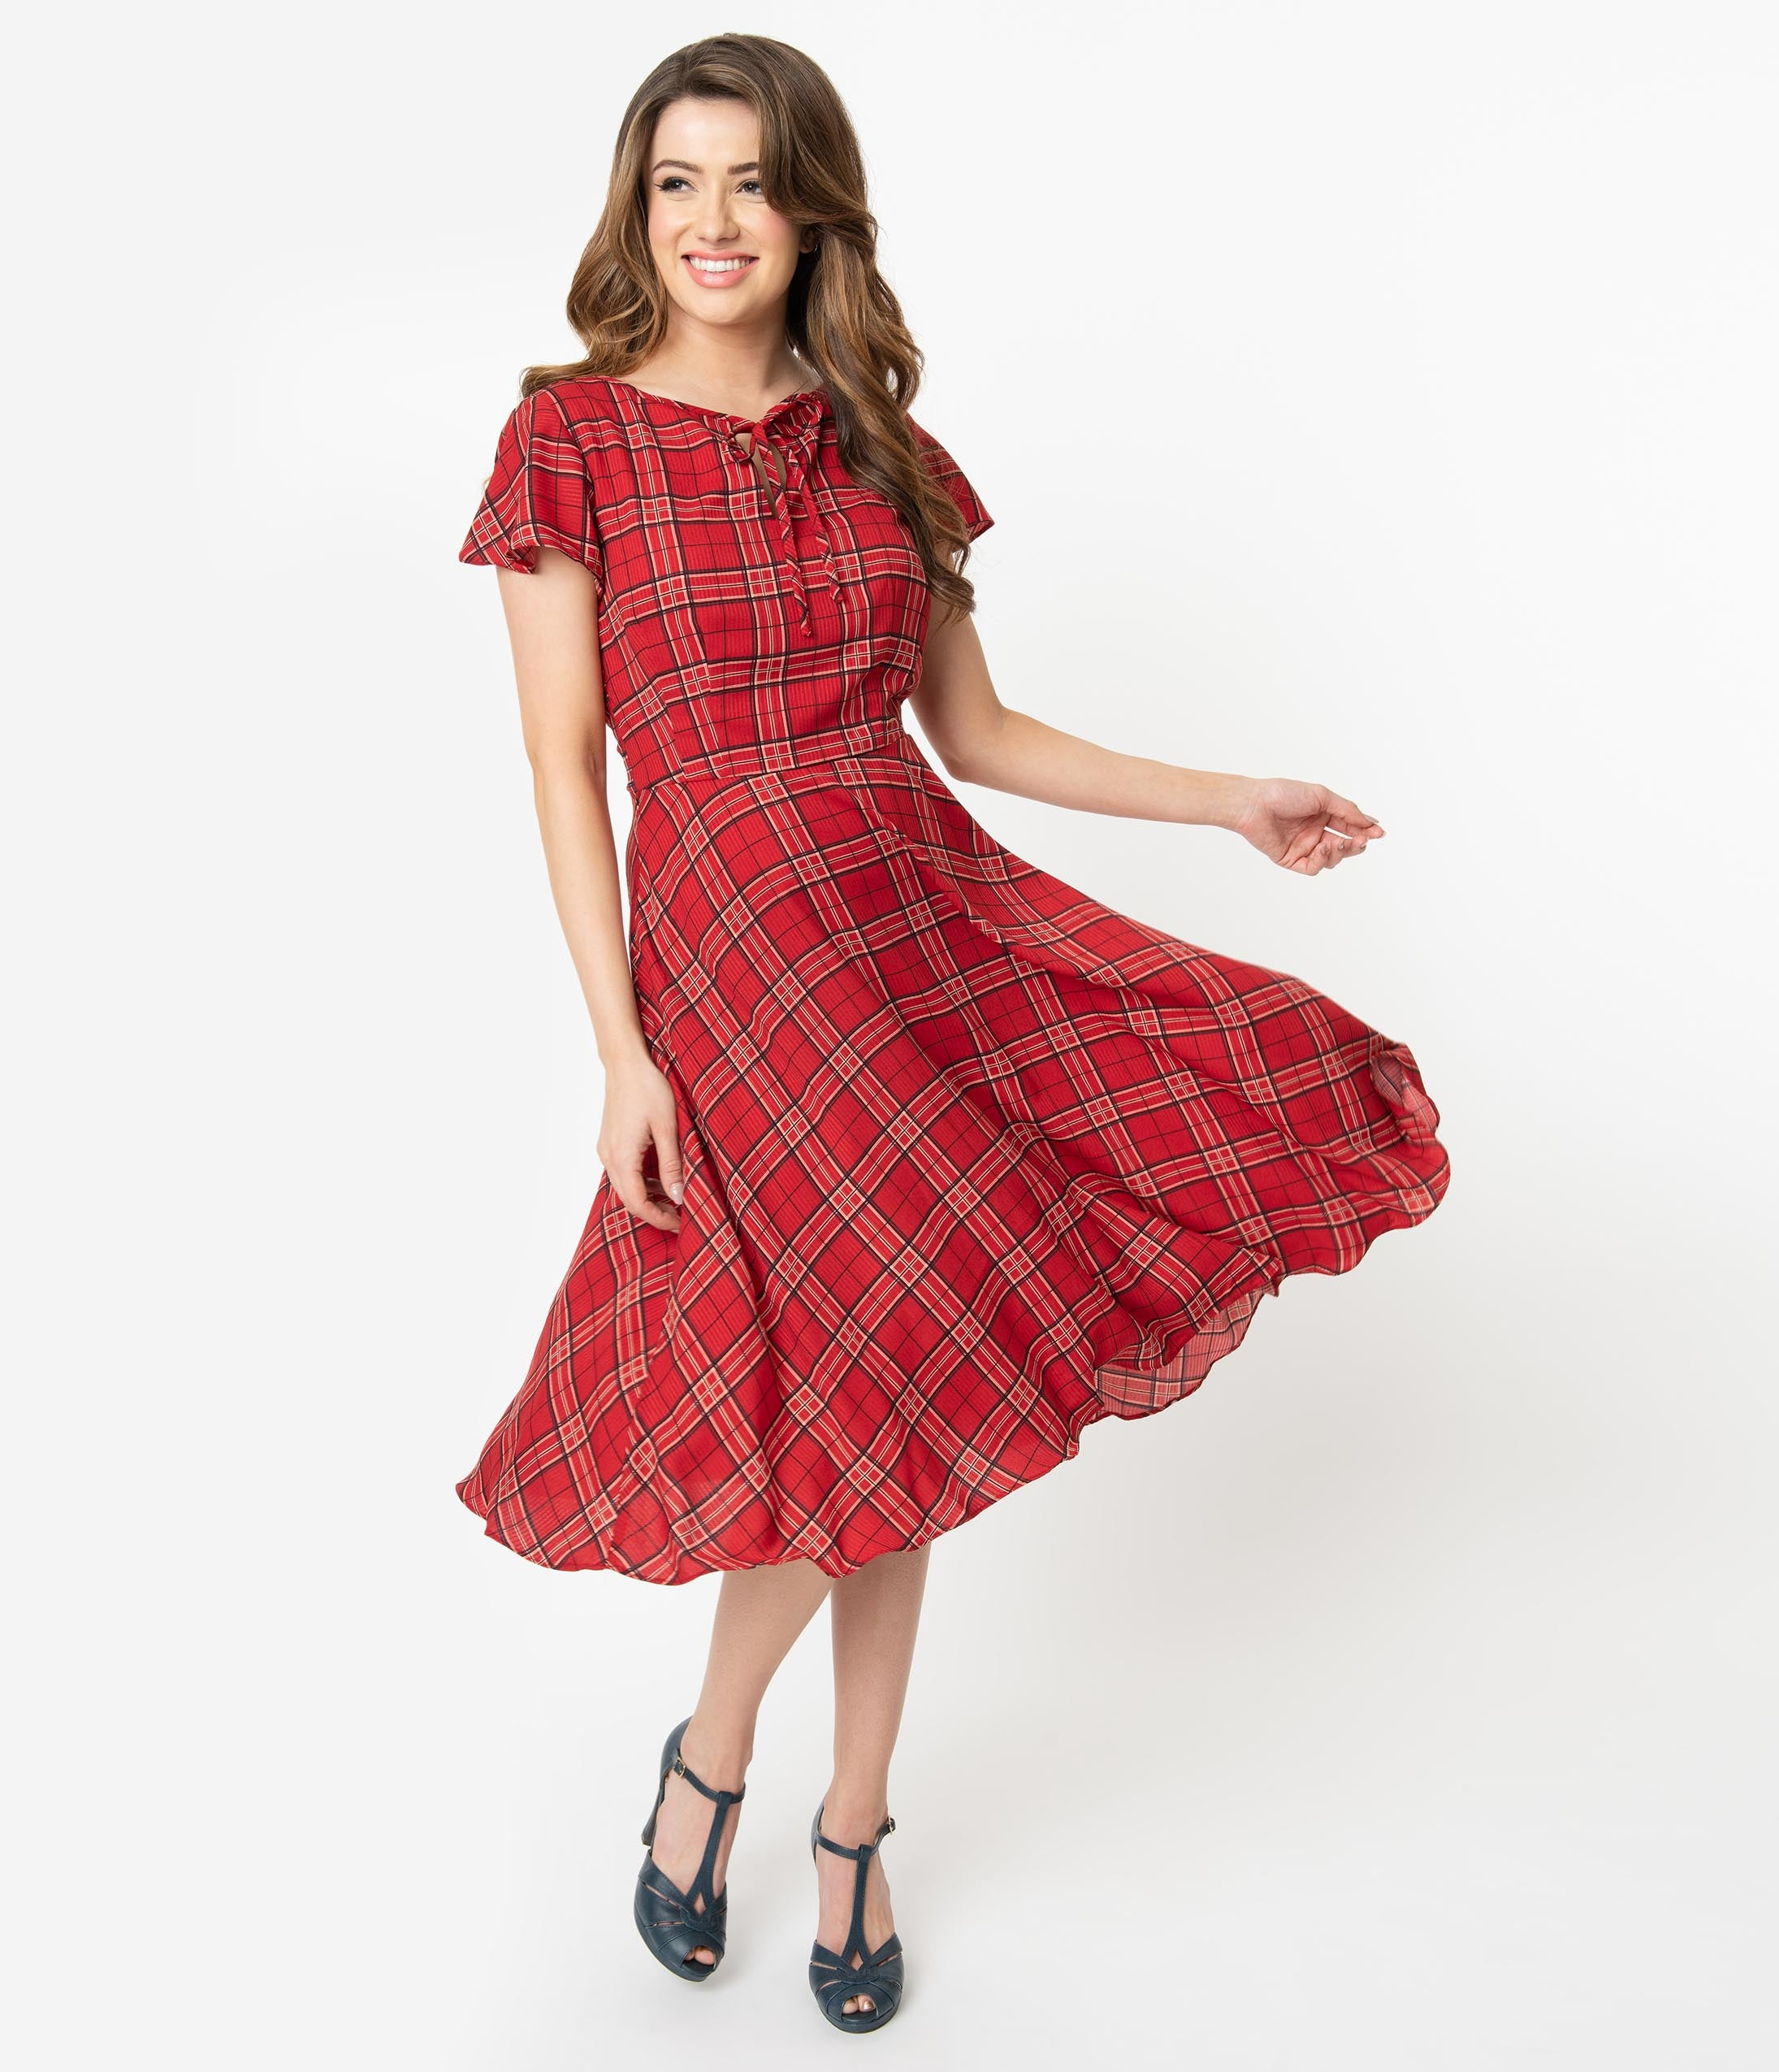 1940s Fashion Advice for Tall Women Unique Vintage 1940S Style Red Plaid Formosa Swing Dress $88.00 AT vintagedancer.com